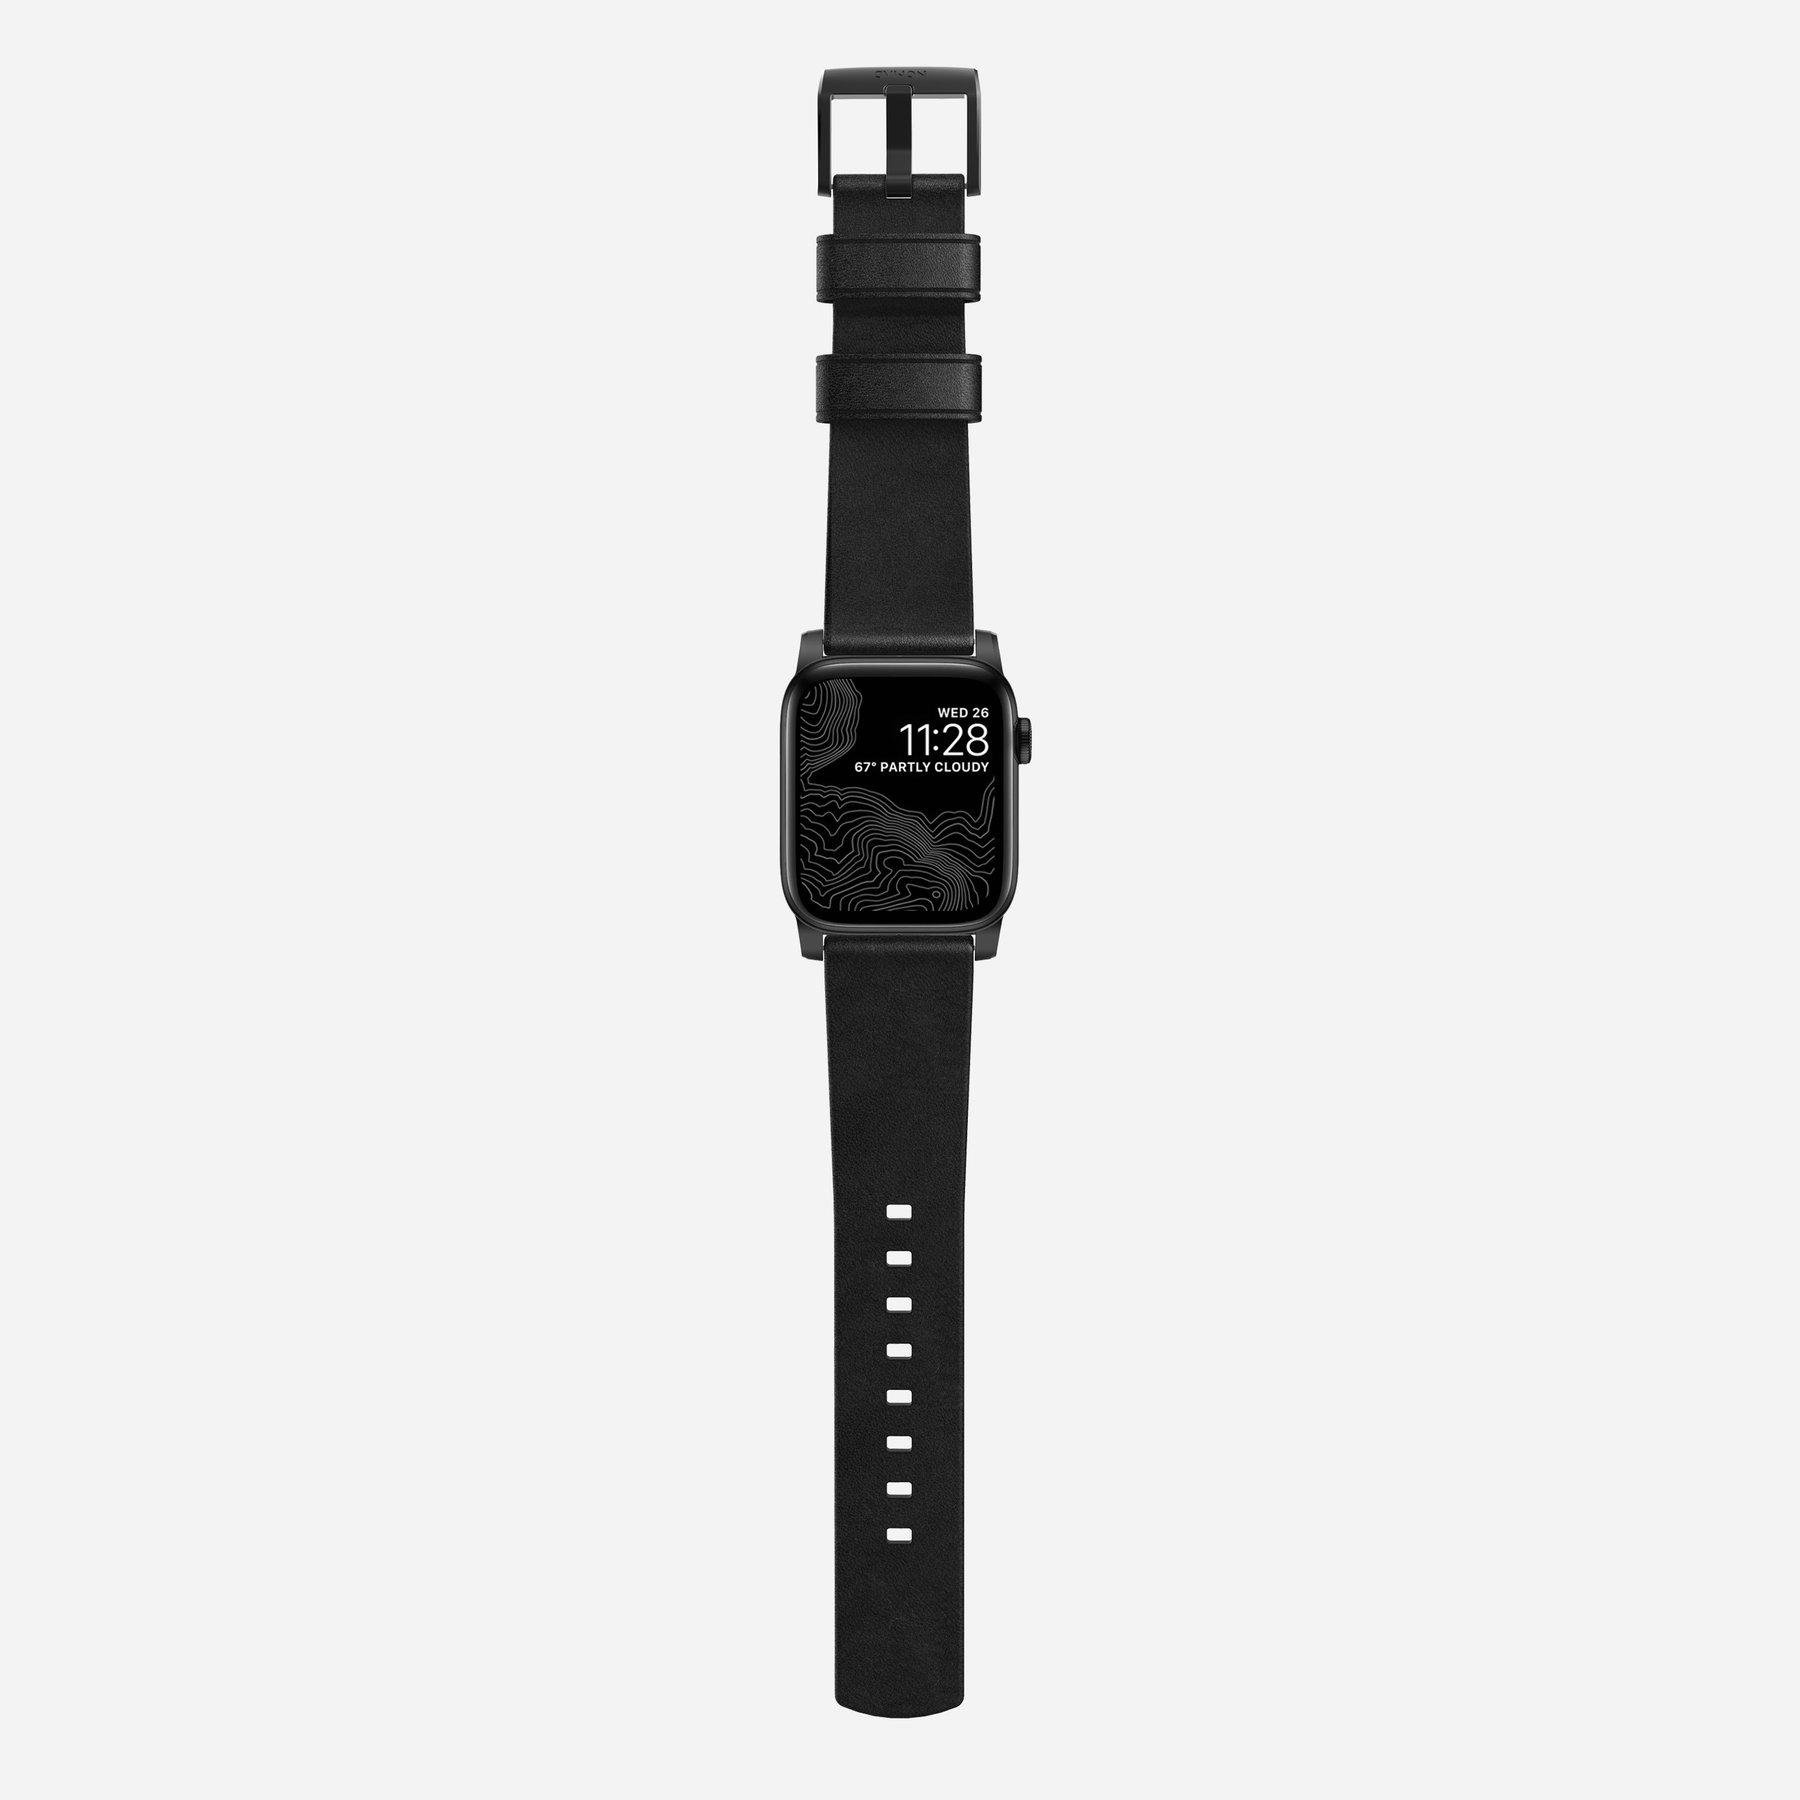 Original Nomad Modern Leather Strap for Apple Watch Series 4/3/2 - 44mm/42mm (